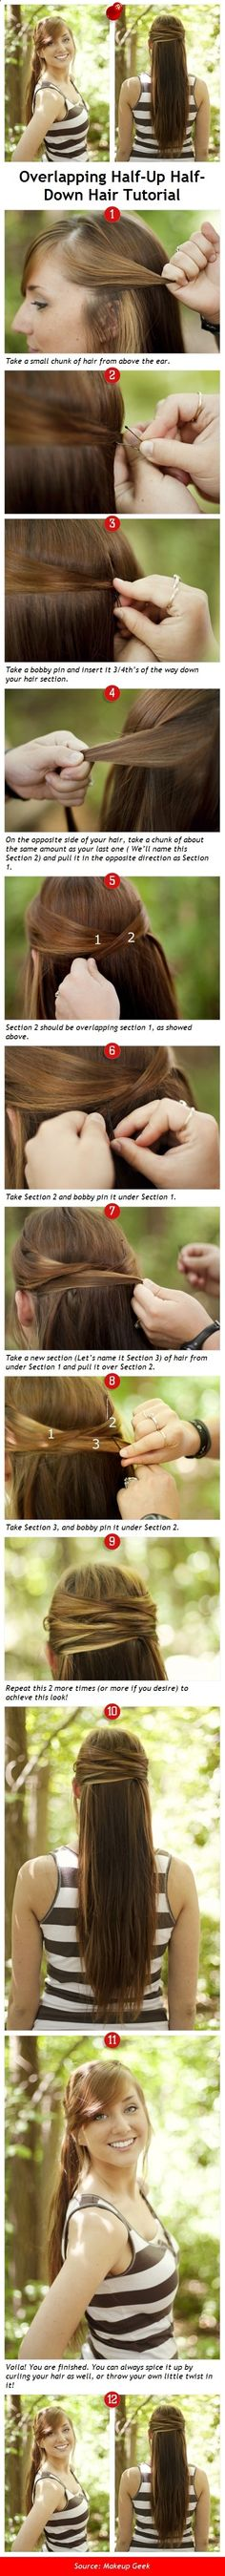 Overlapping Half-Up Half-Down Hair Tutorial